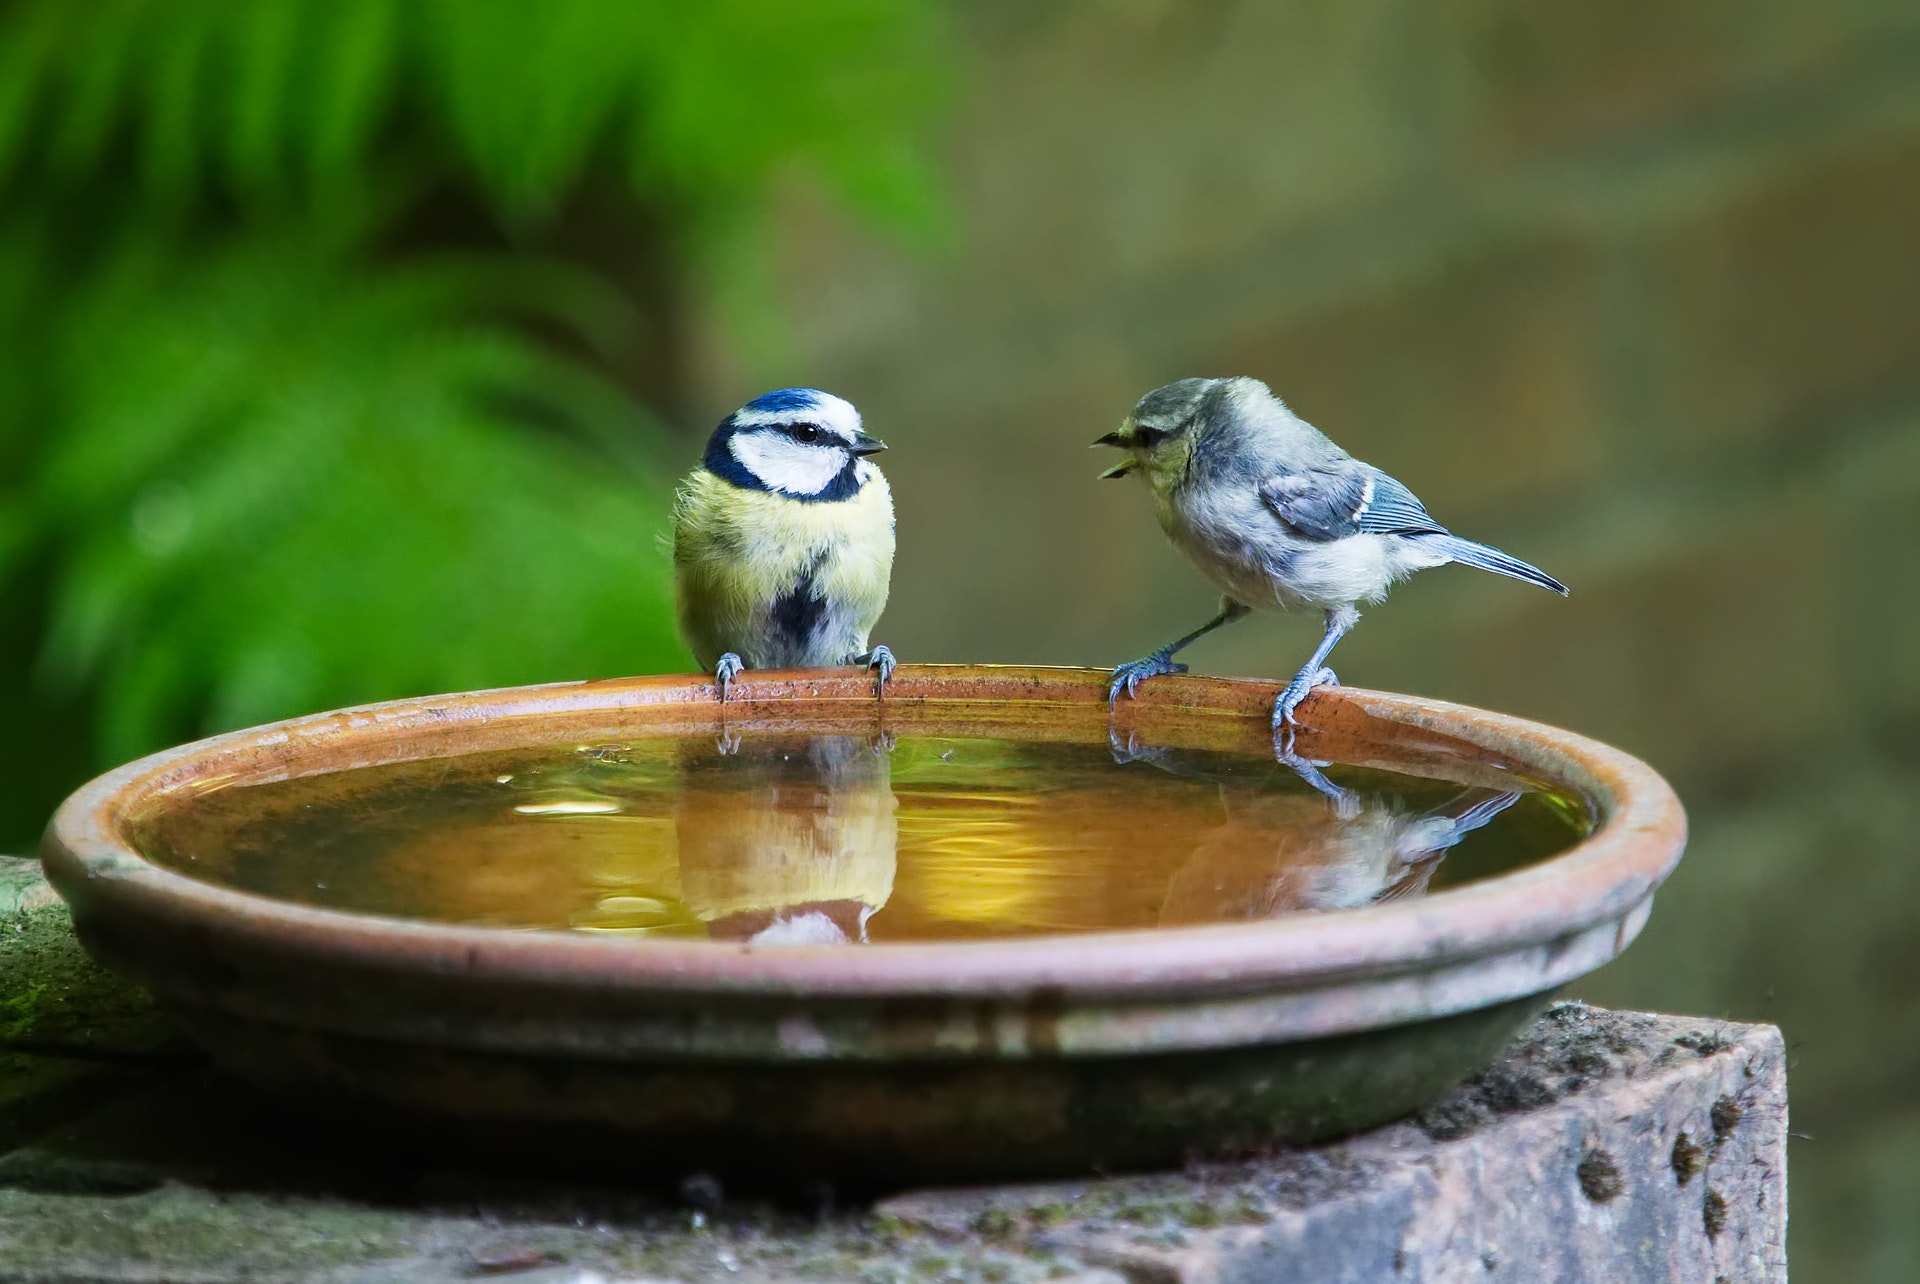 Birdbath containing standing water